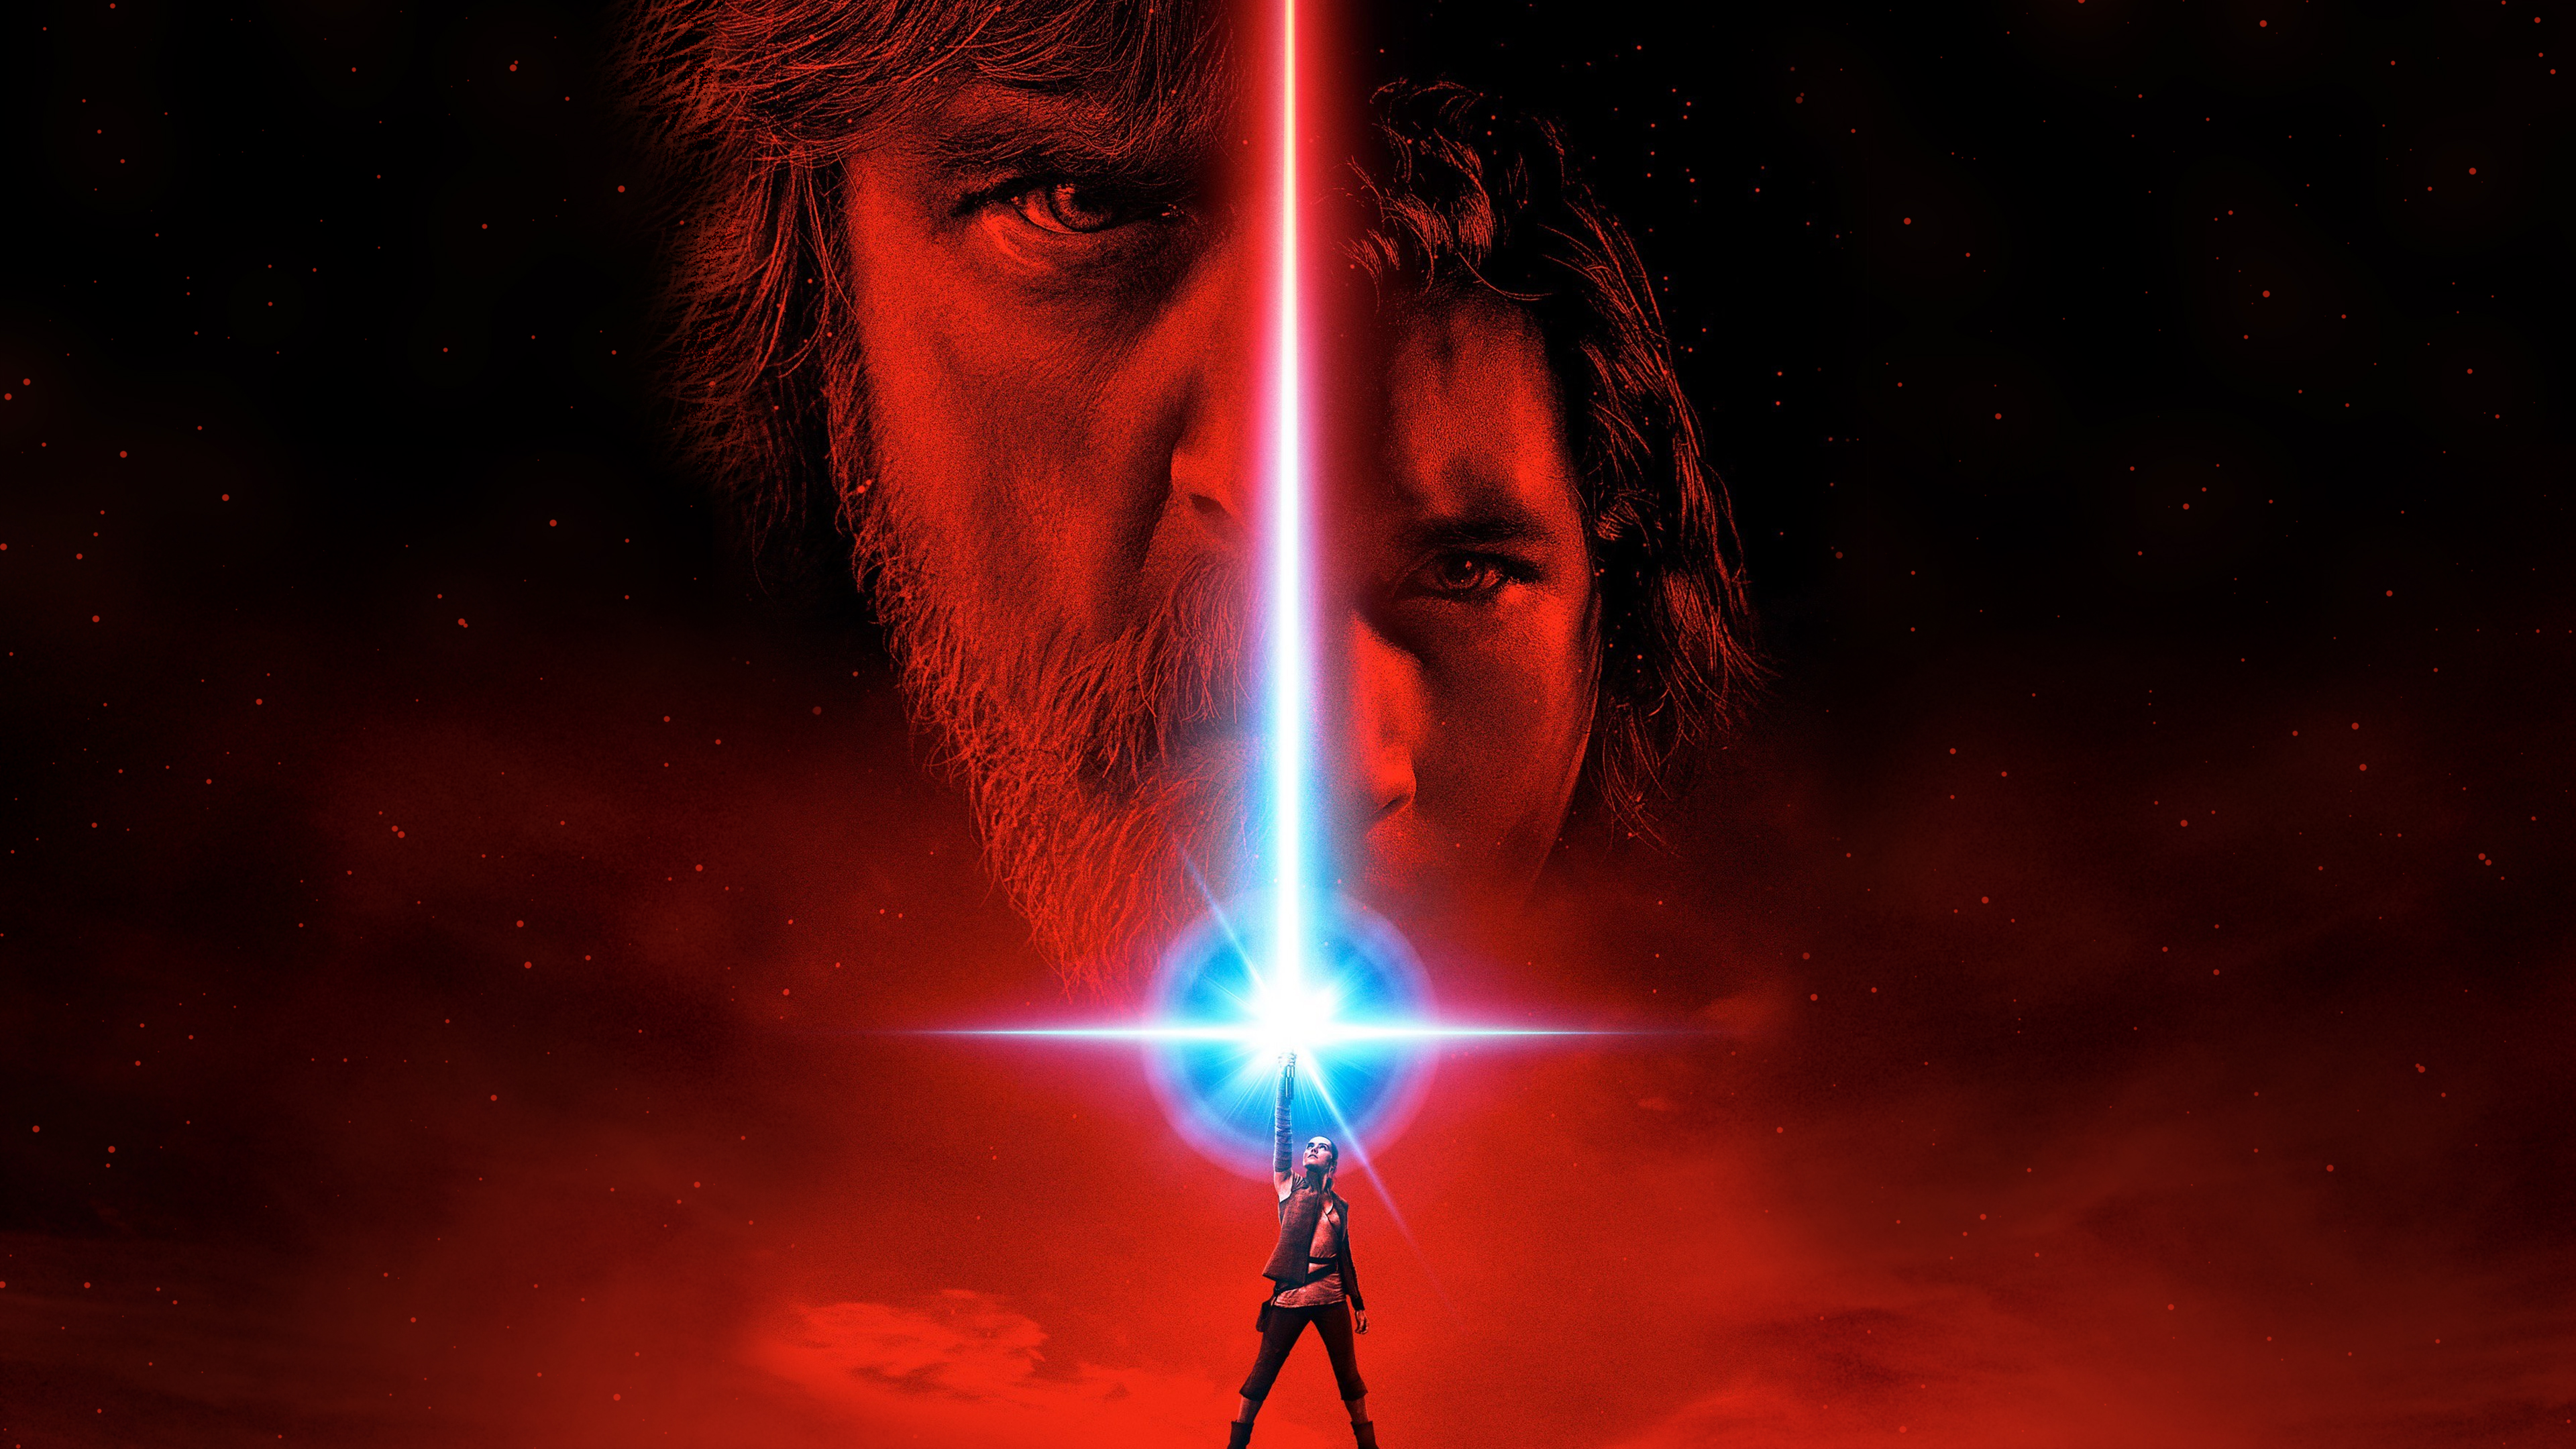 Star Wars Episode Viii The Last Jedi Wallpapers Pictures Images